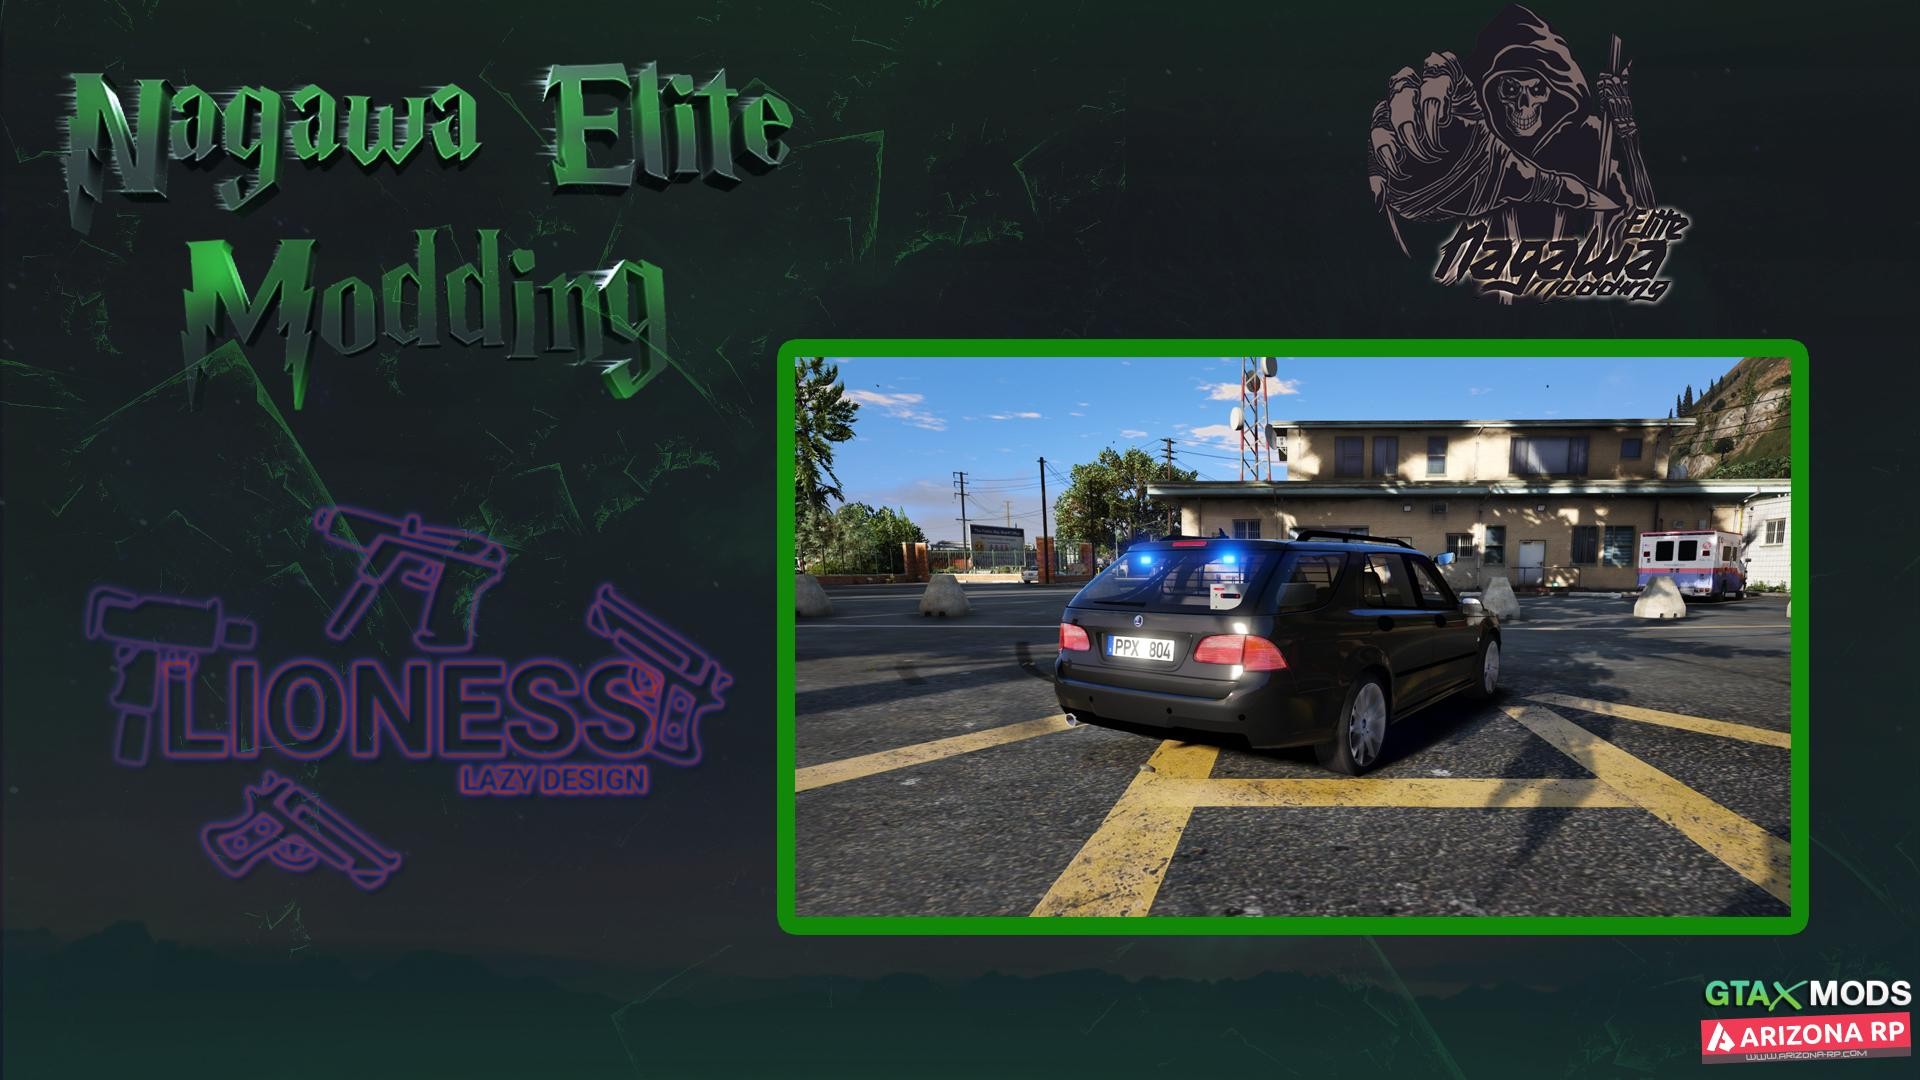 NEW FBI CAR | Nagawa Elite Modding